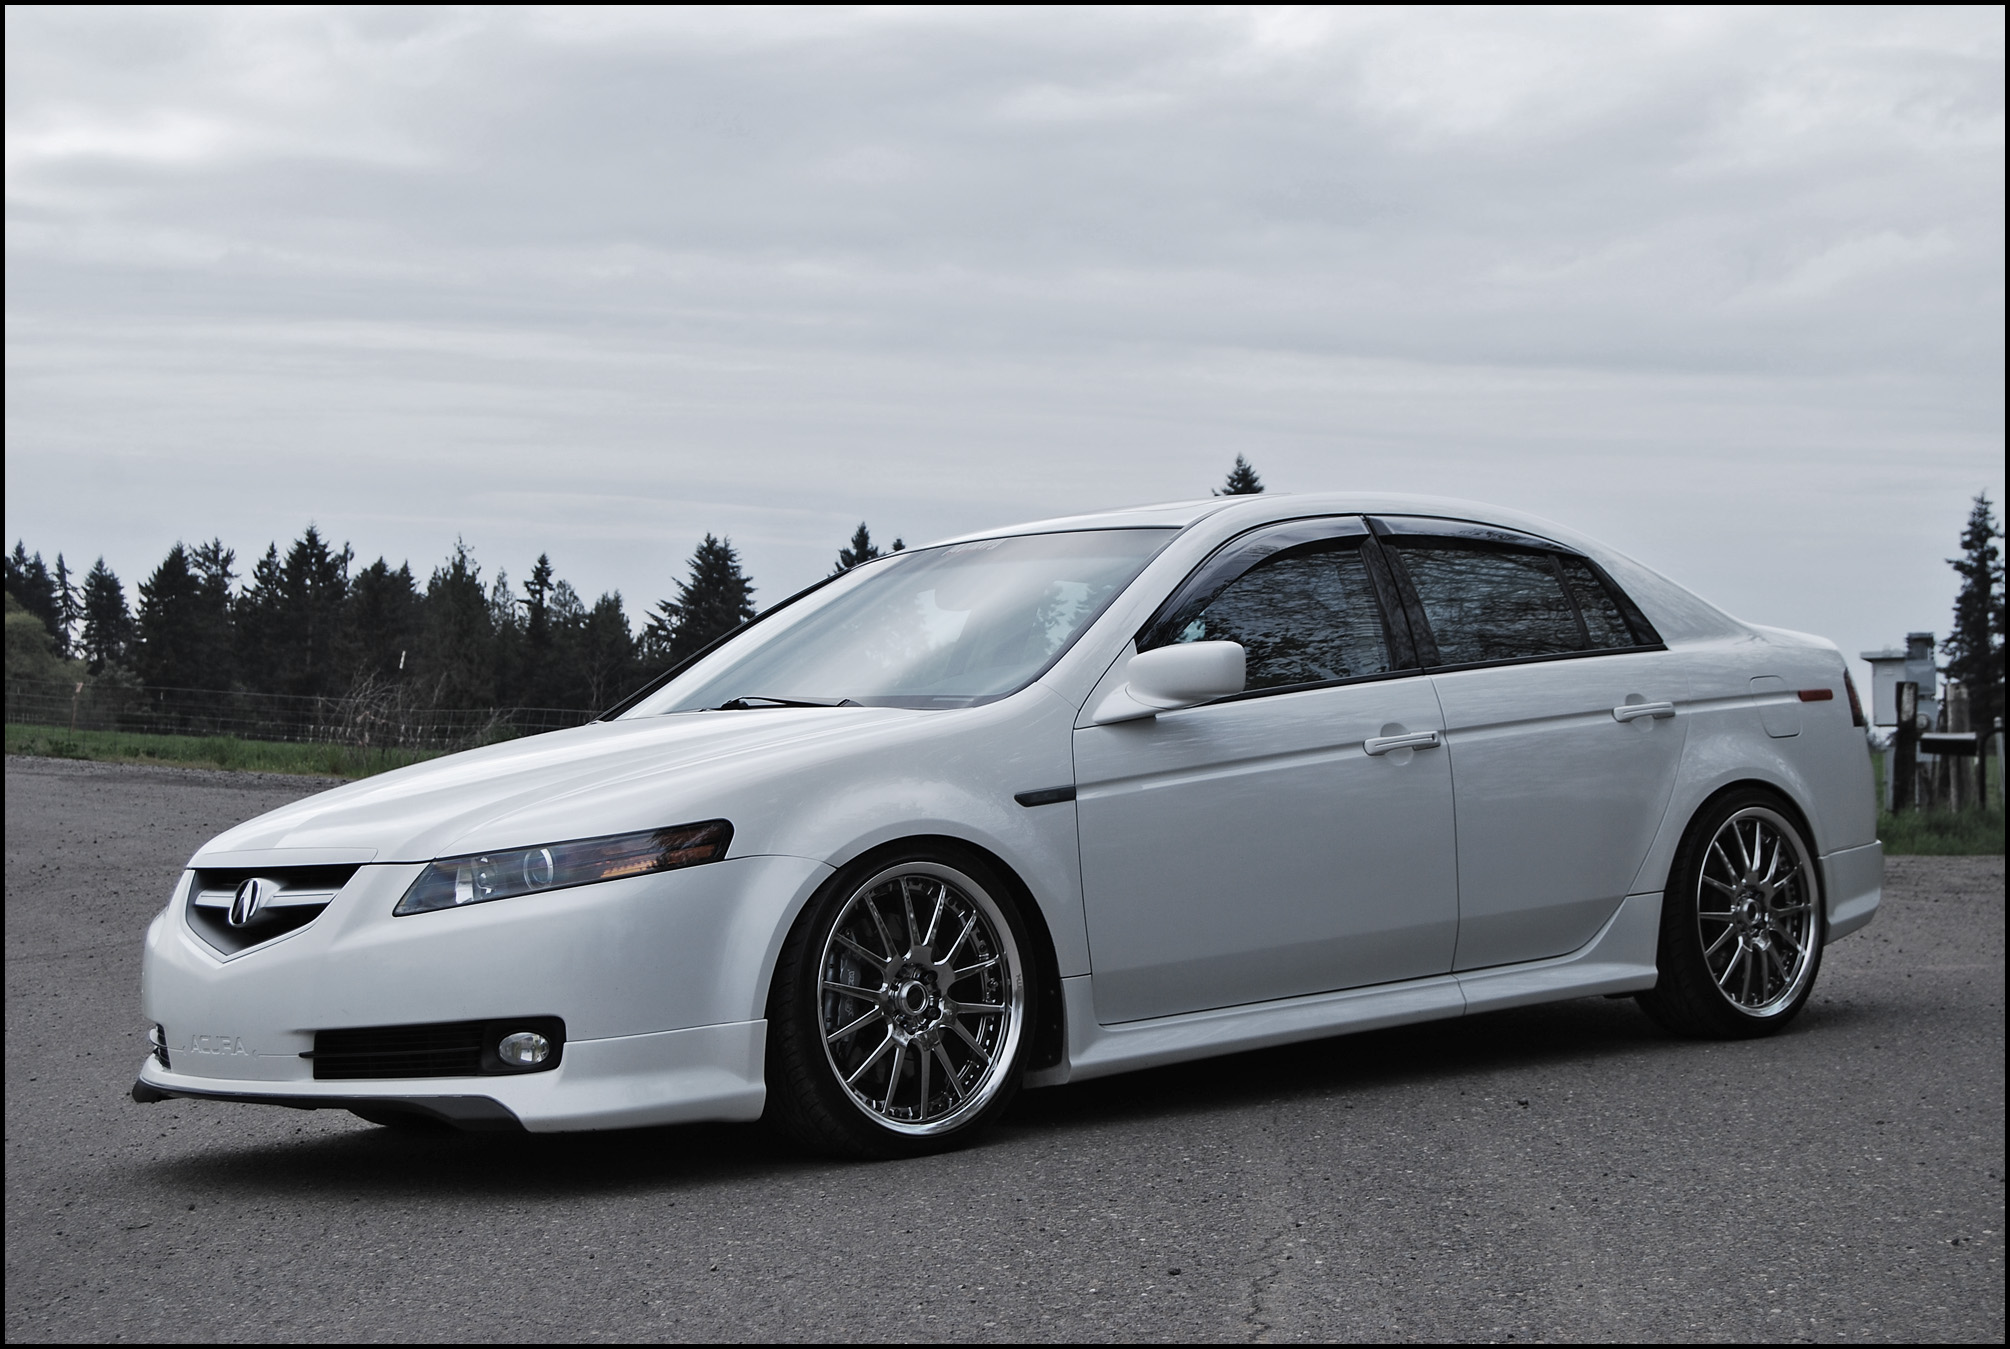 acura tl custom wheels rays engineering volk racing gt m. Black Bedroom Furniture Sets. Home Design Ideas